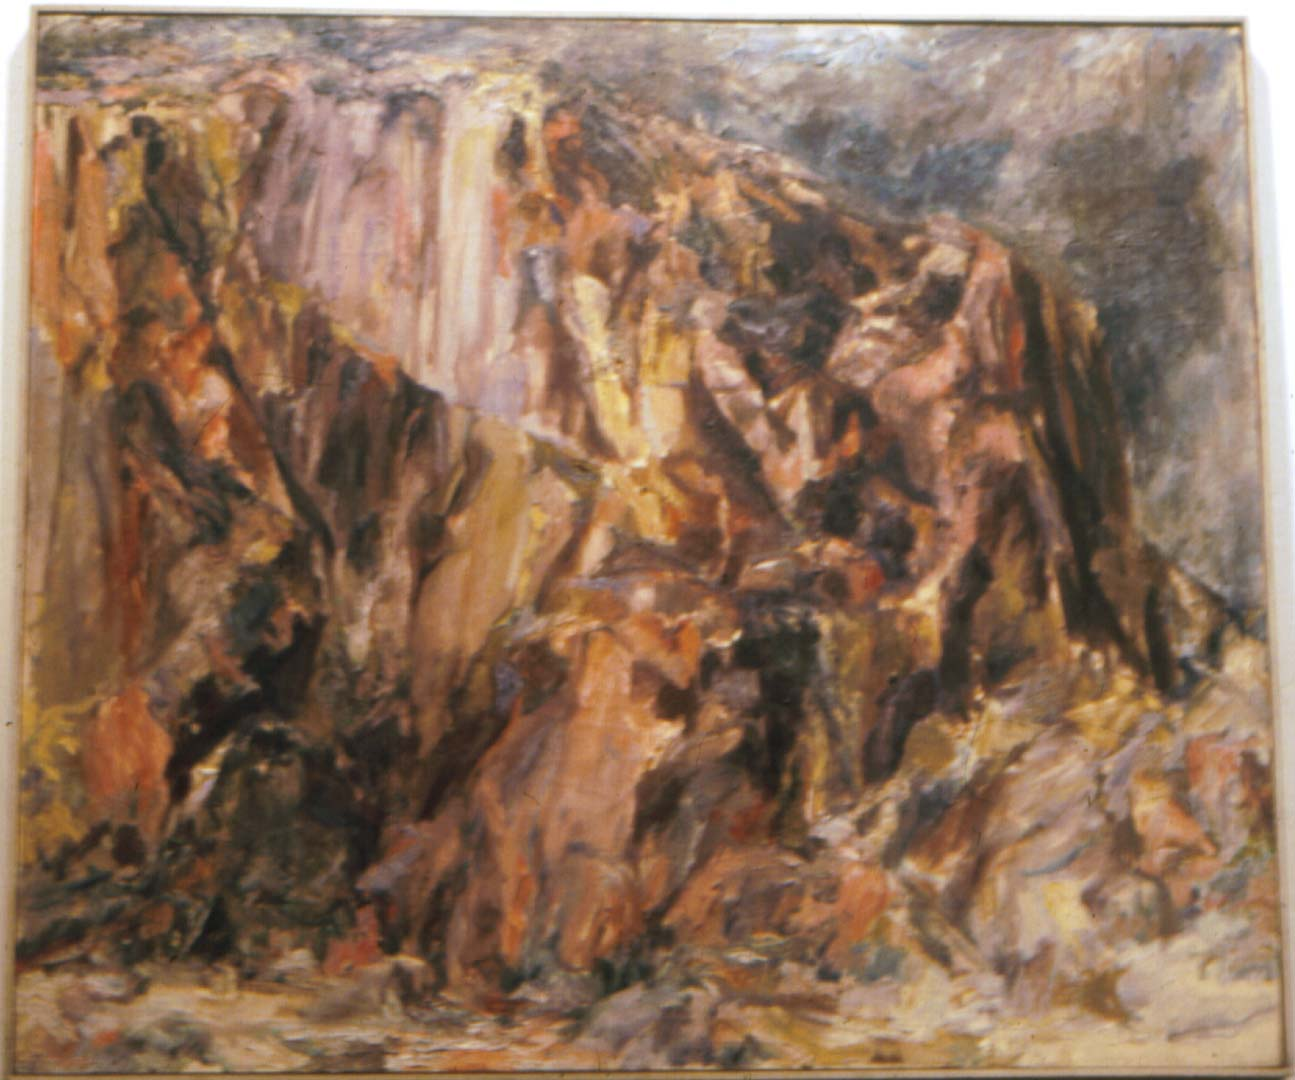 1956 Butte Landscape Oil on Canvas 36 x 44